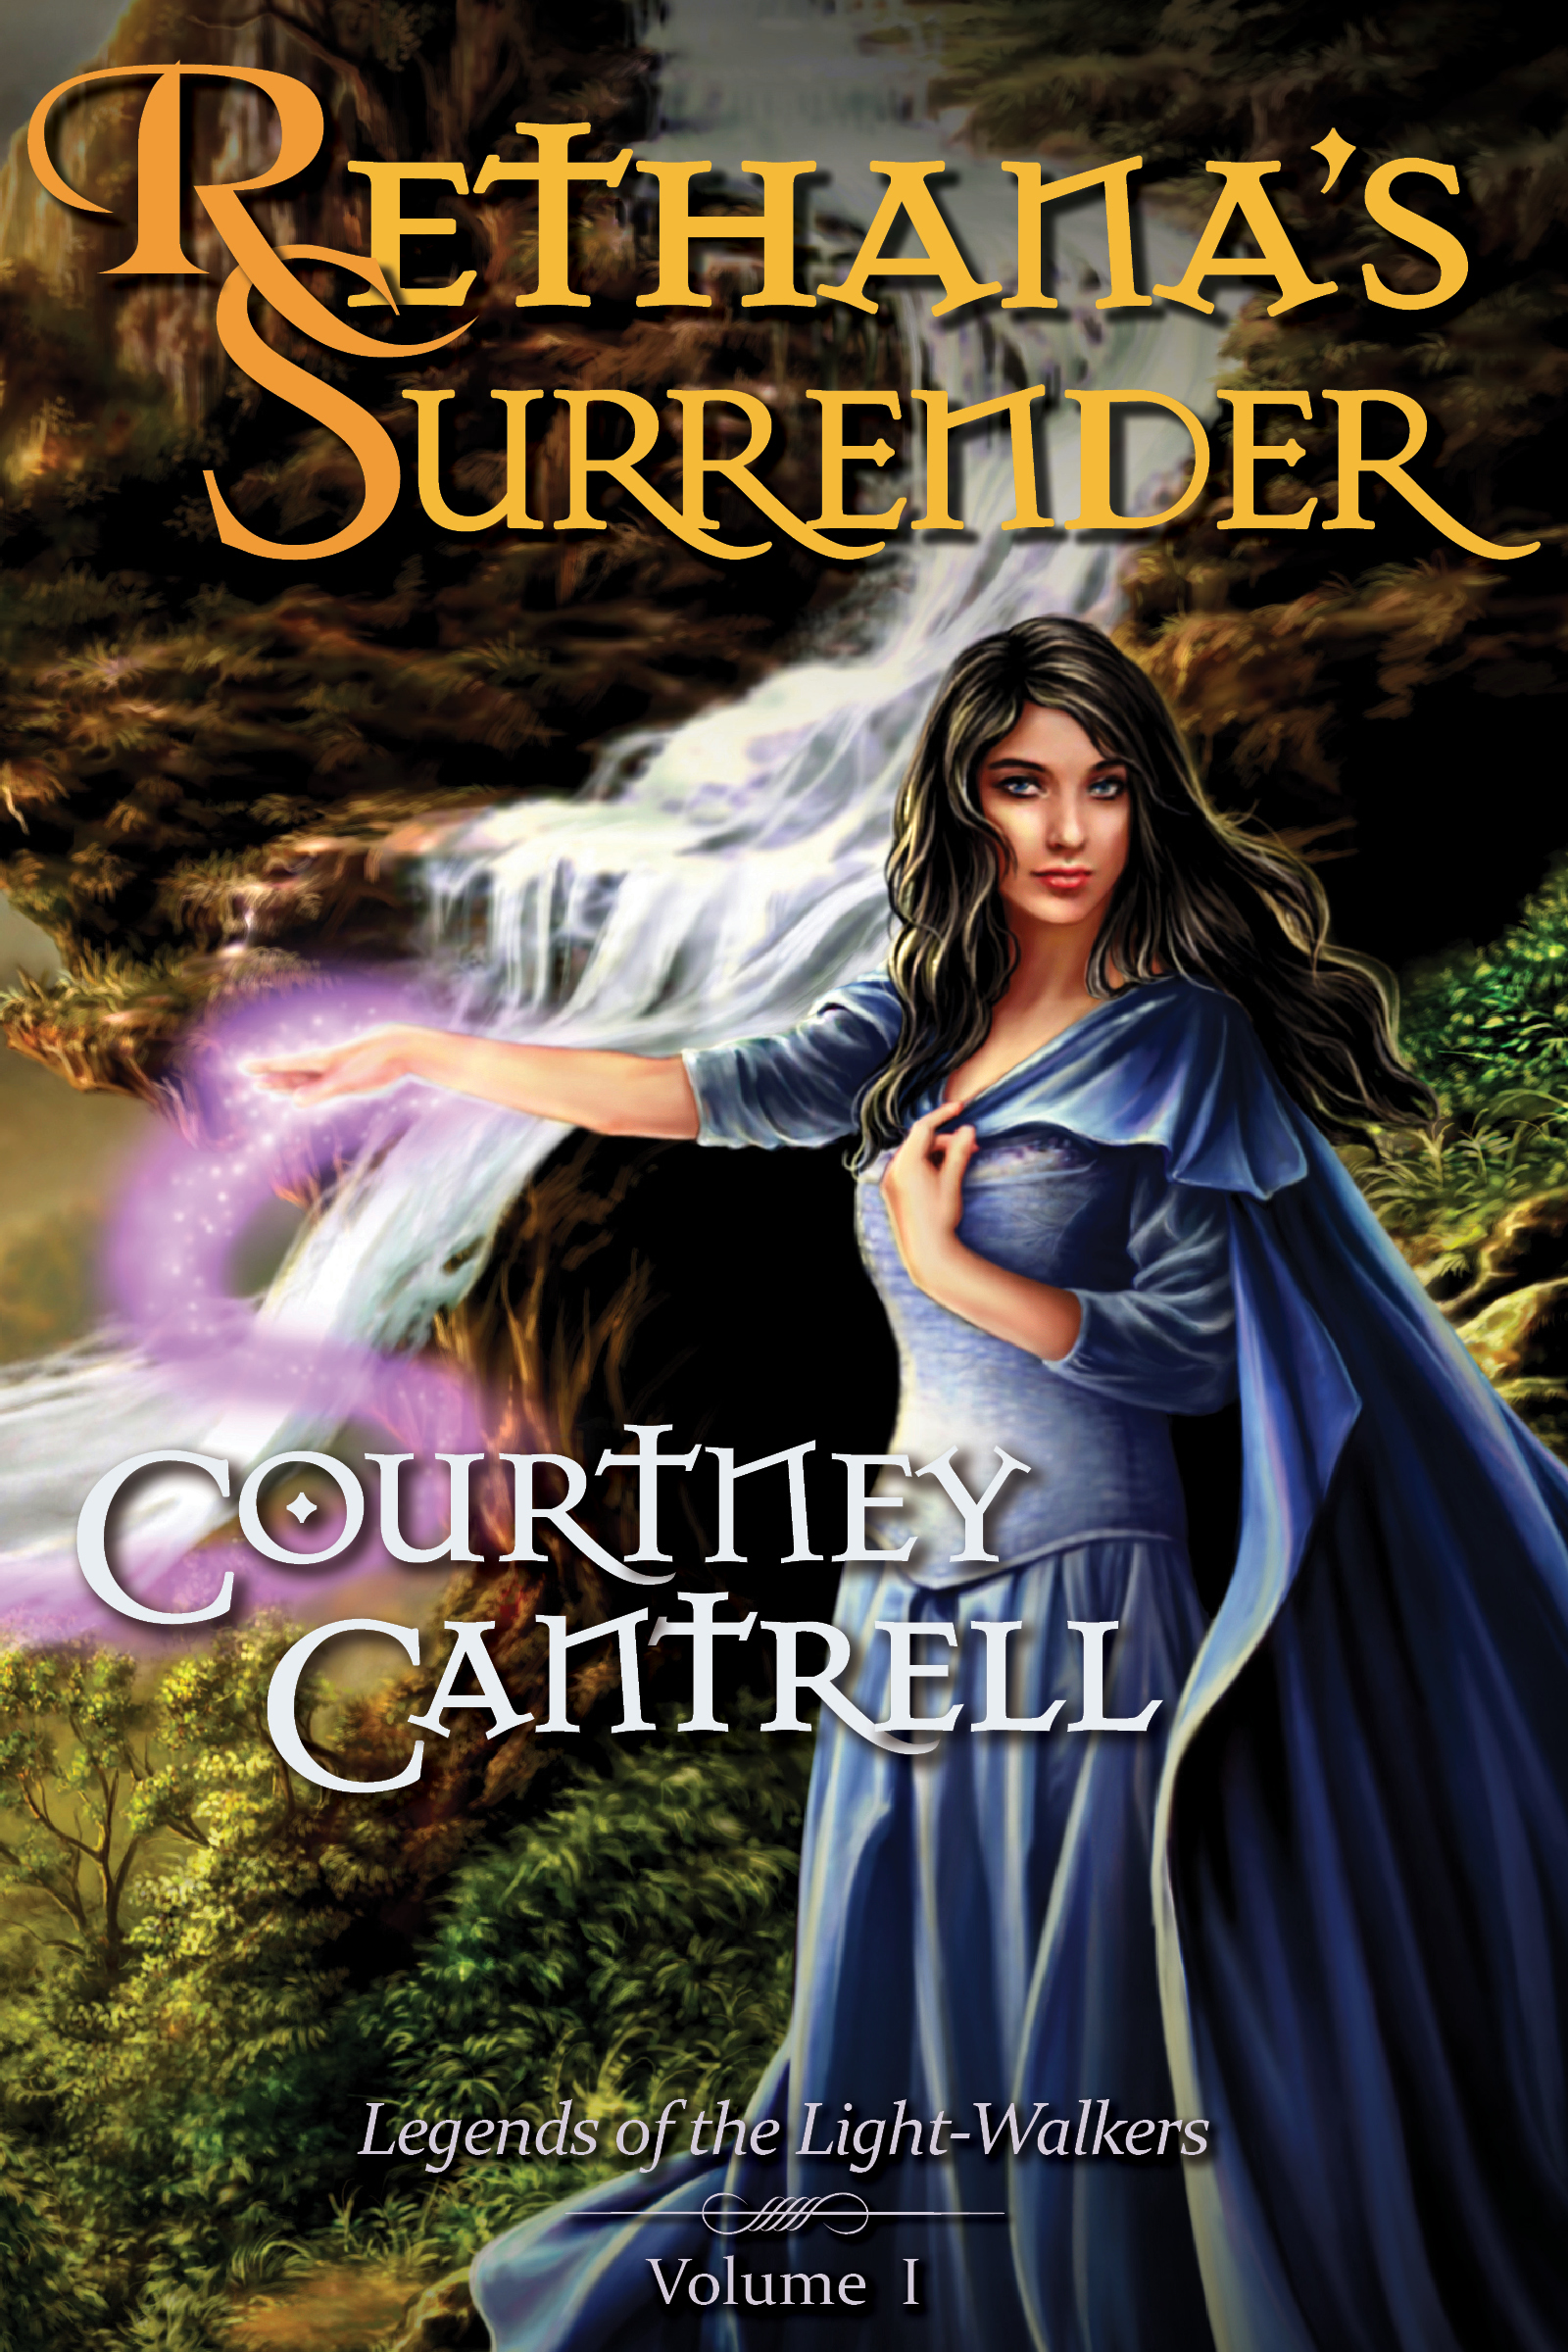 Rethana's Surrender at Consortium Books